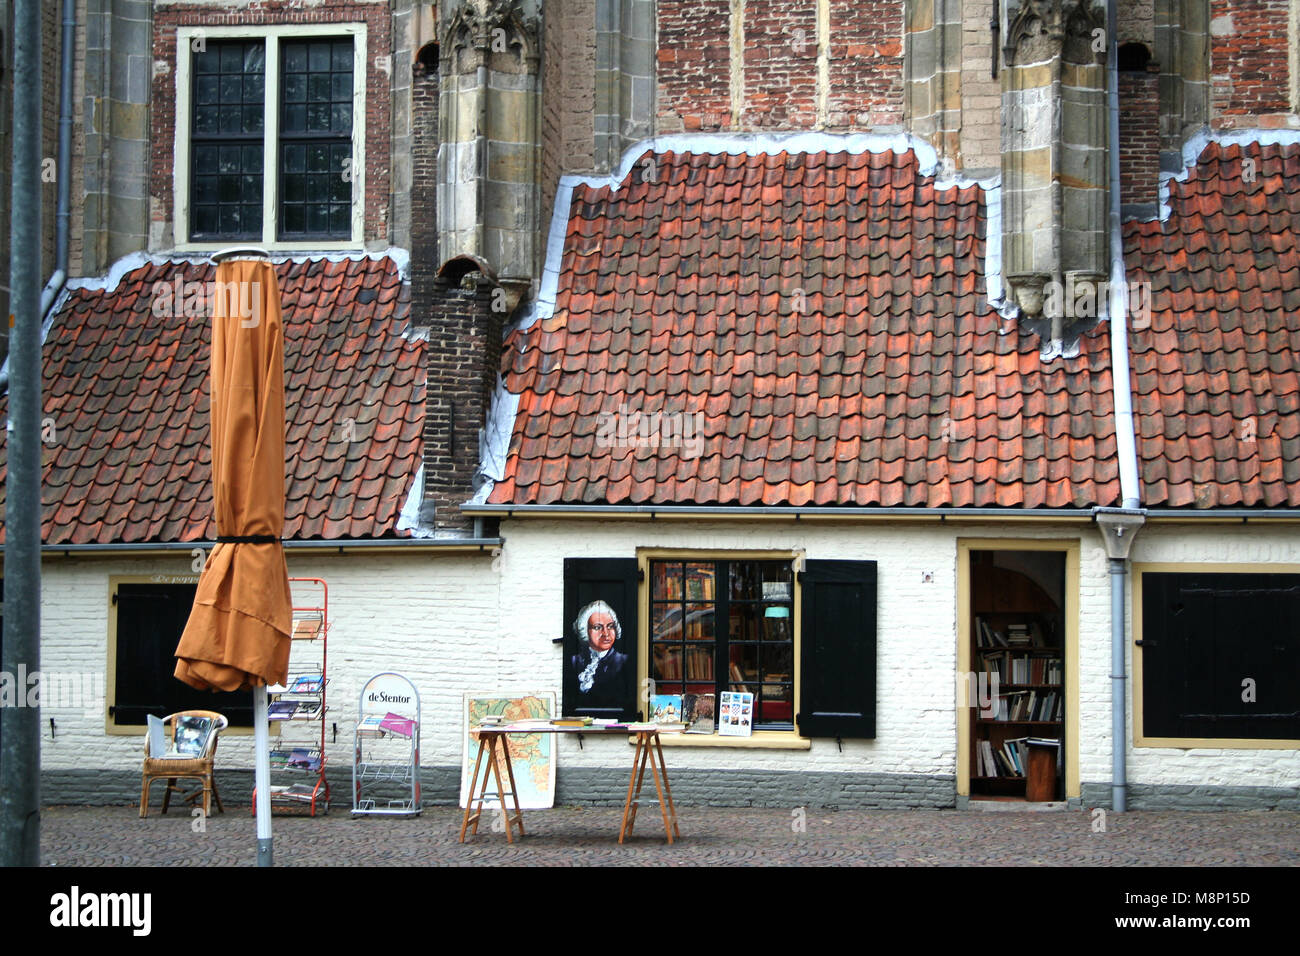 Netherlands,Overijssel,Deventer june 2016: Wall dwelling Lebuinus church or Great church started in 770 as a wooden Stock Photo